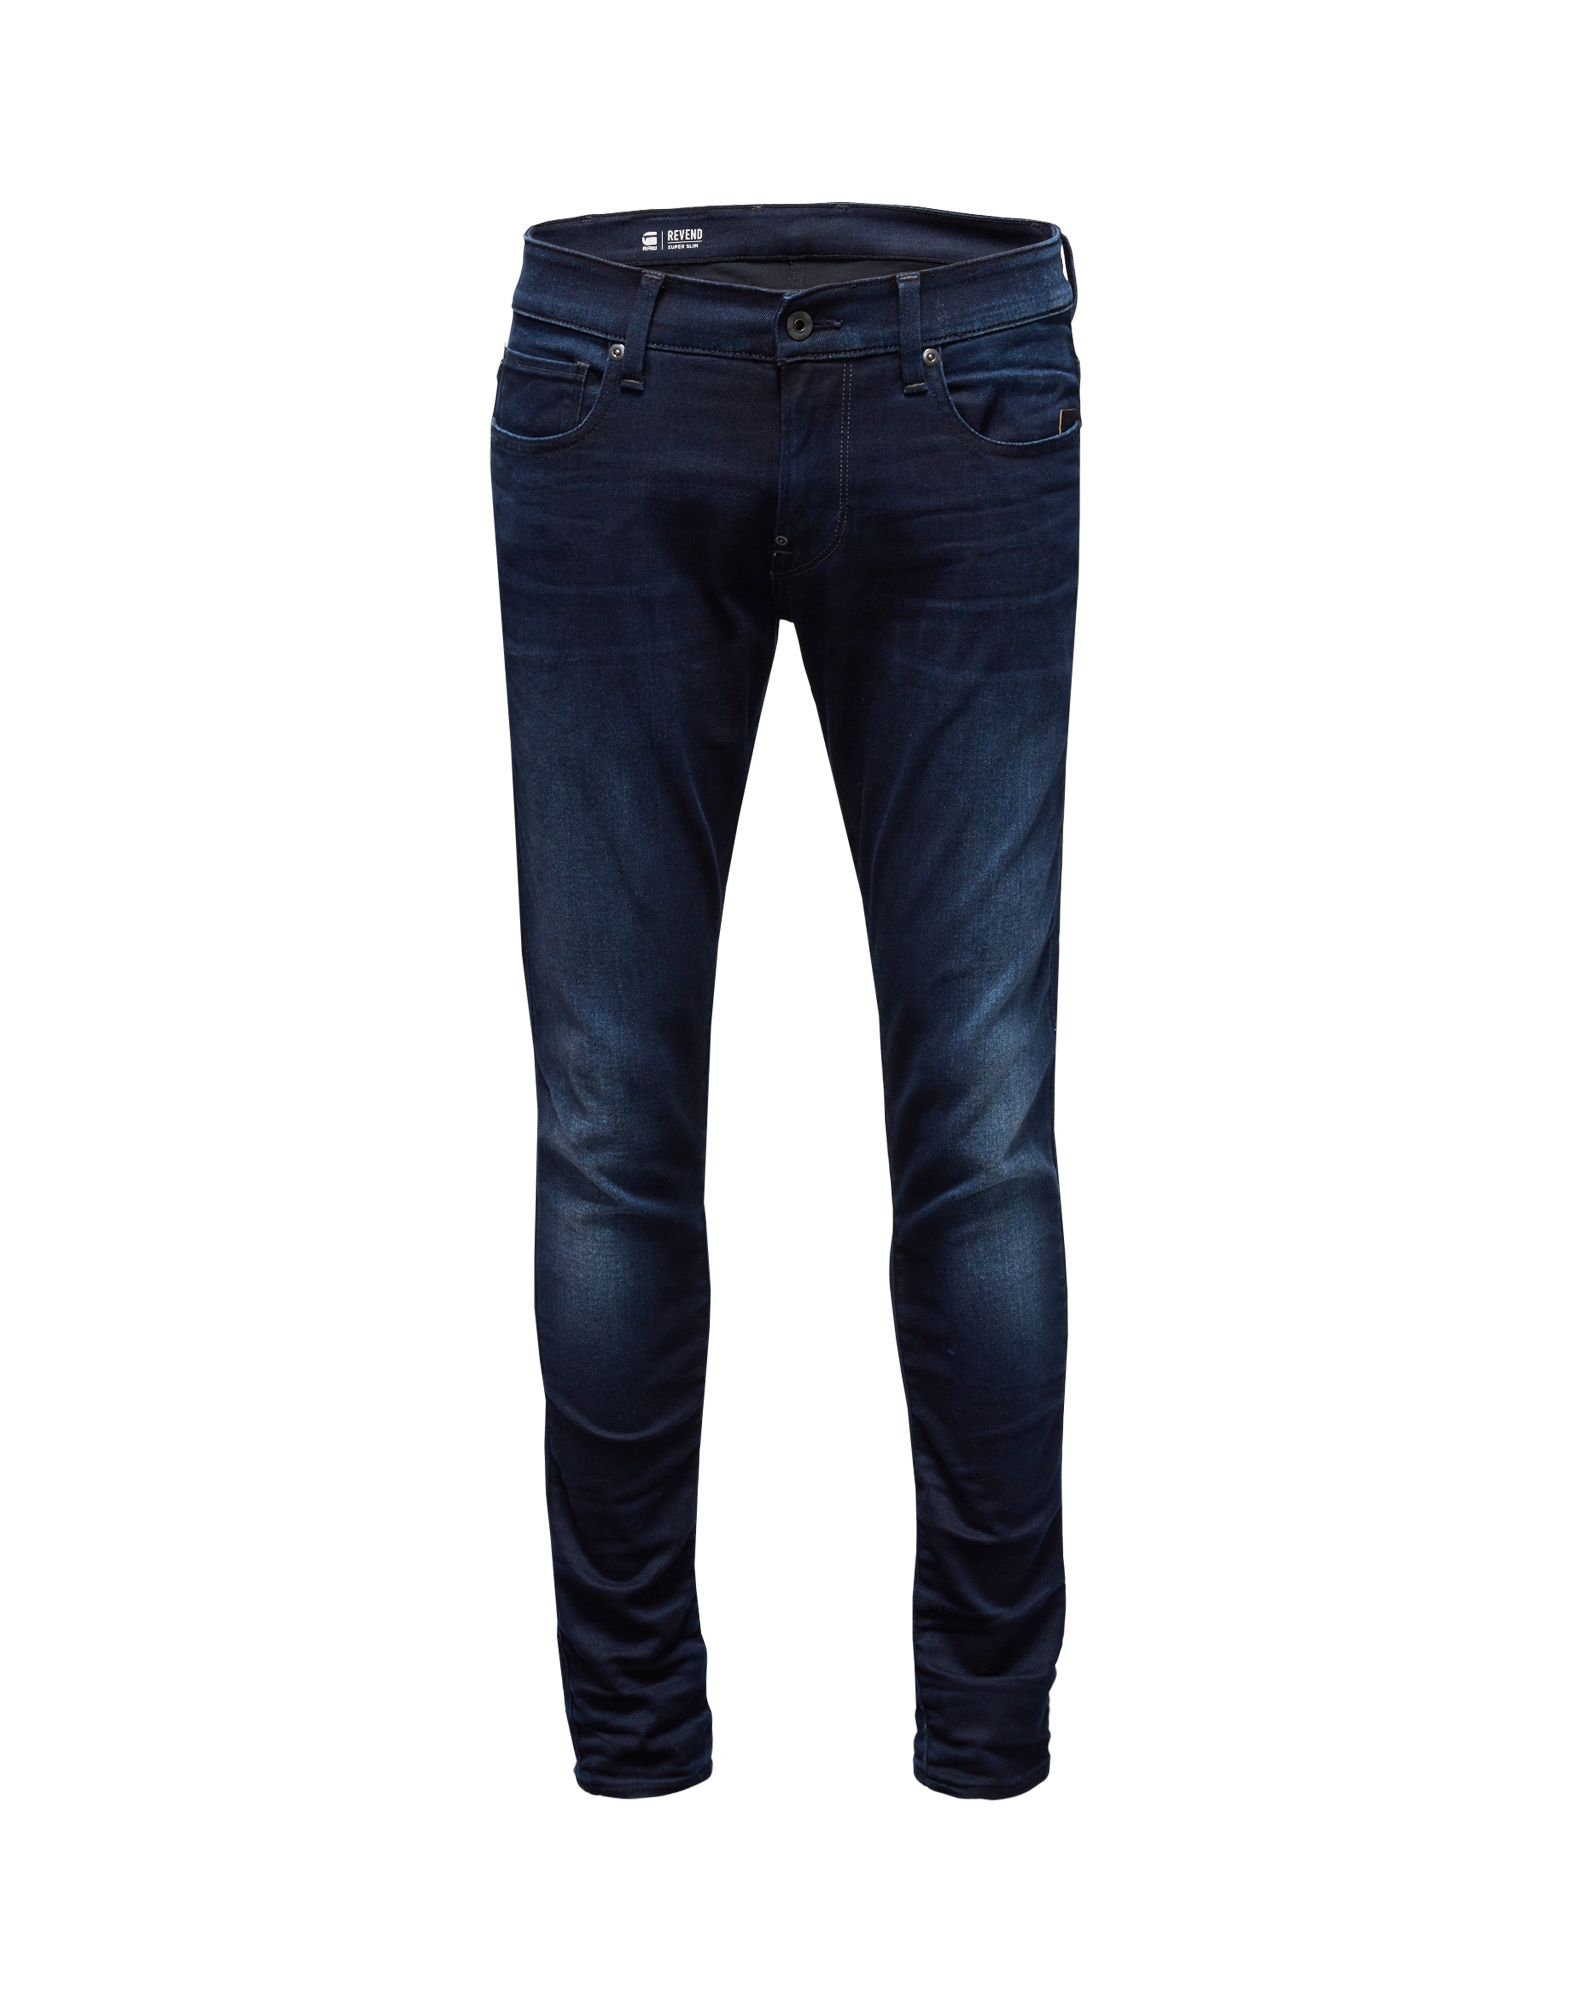 G-STAR RAW Heren Jeans Revend Super Slim blue denim